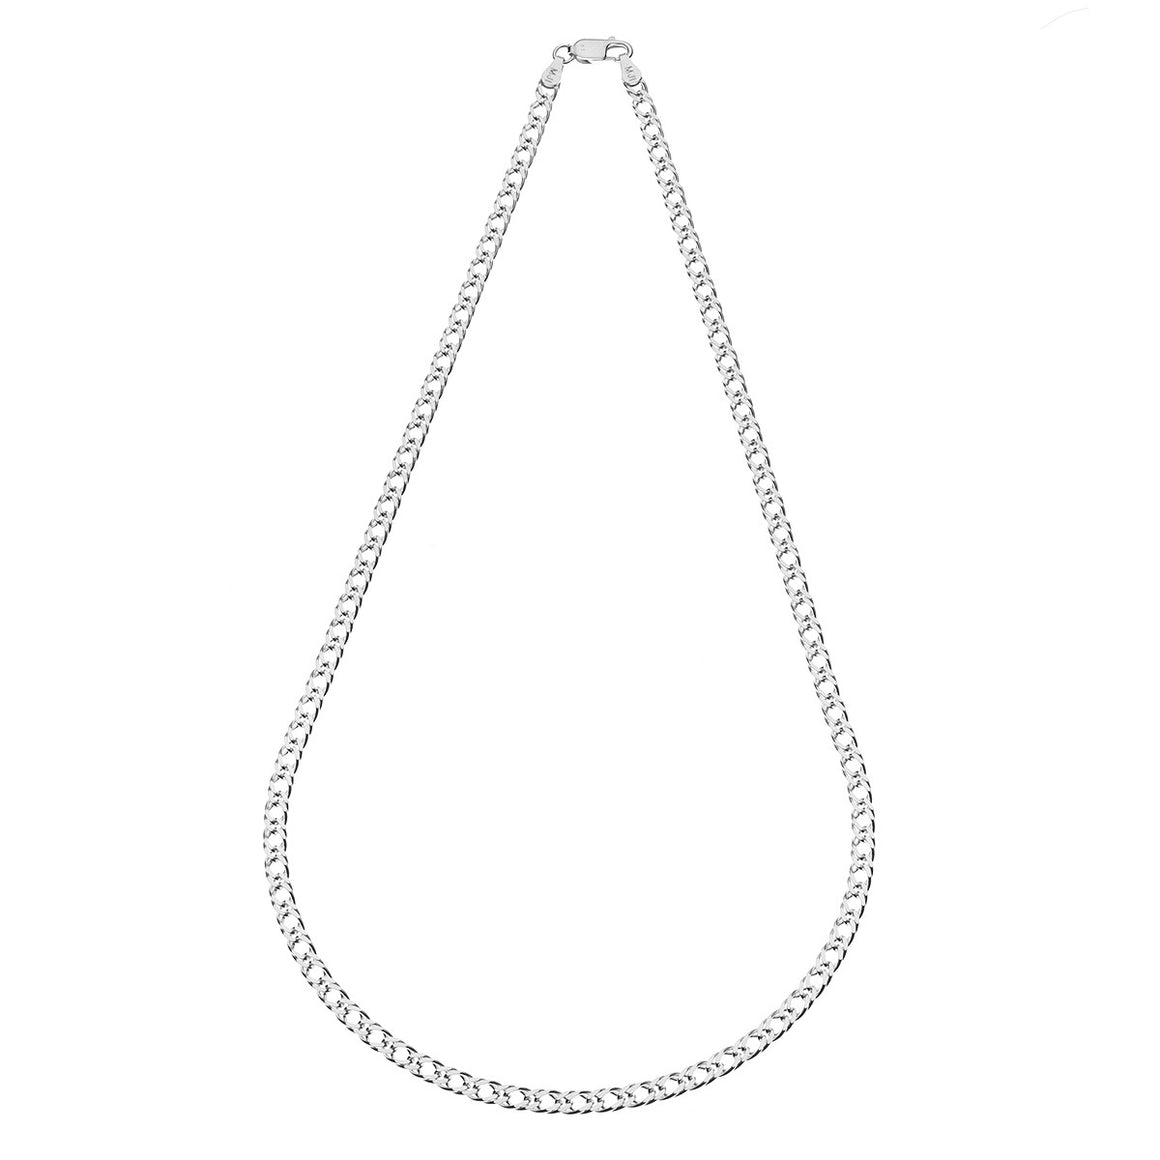 Sterling Silver Italian Double Link Chain - 3.7 mm